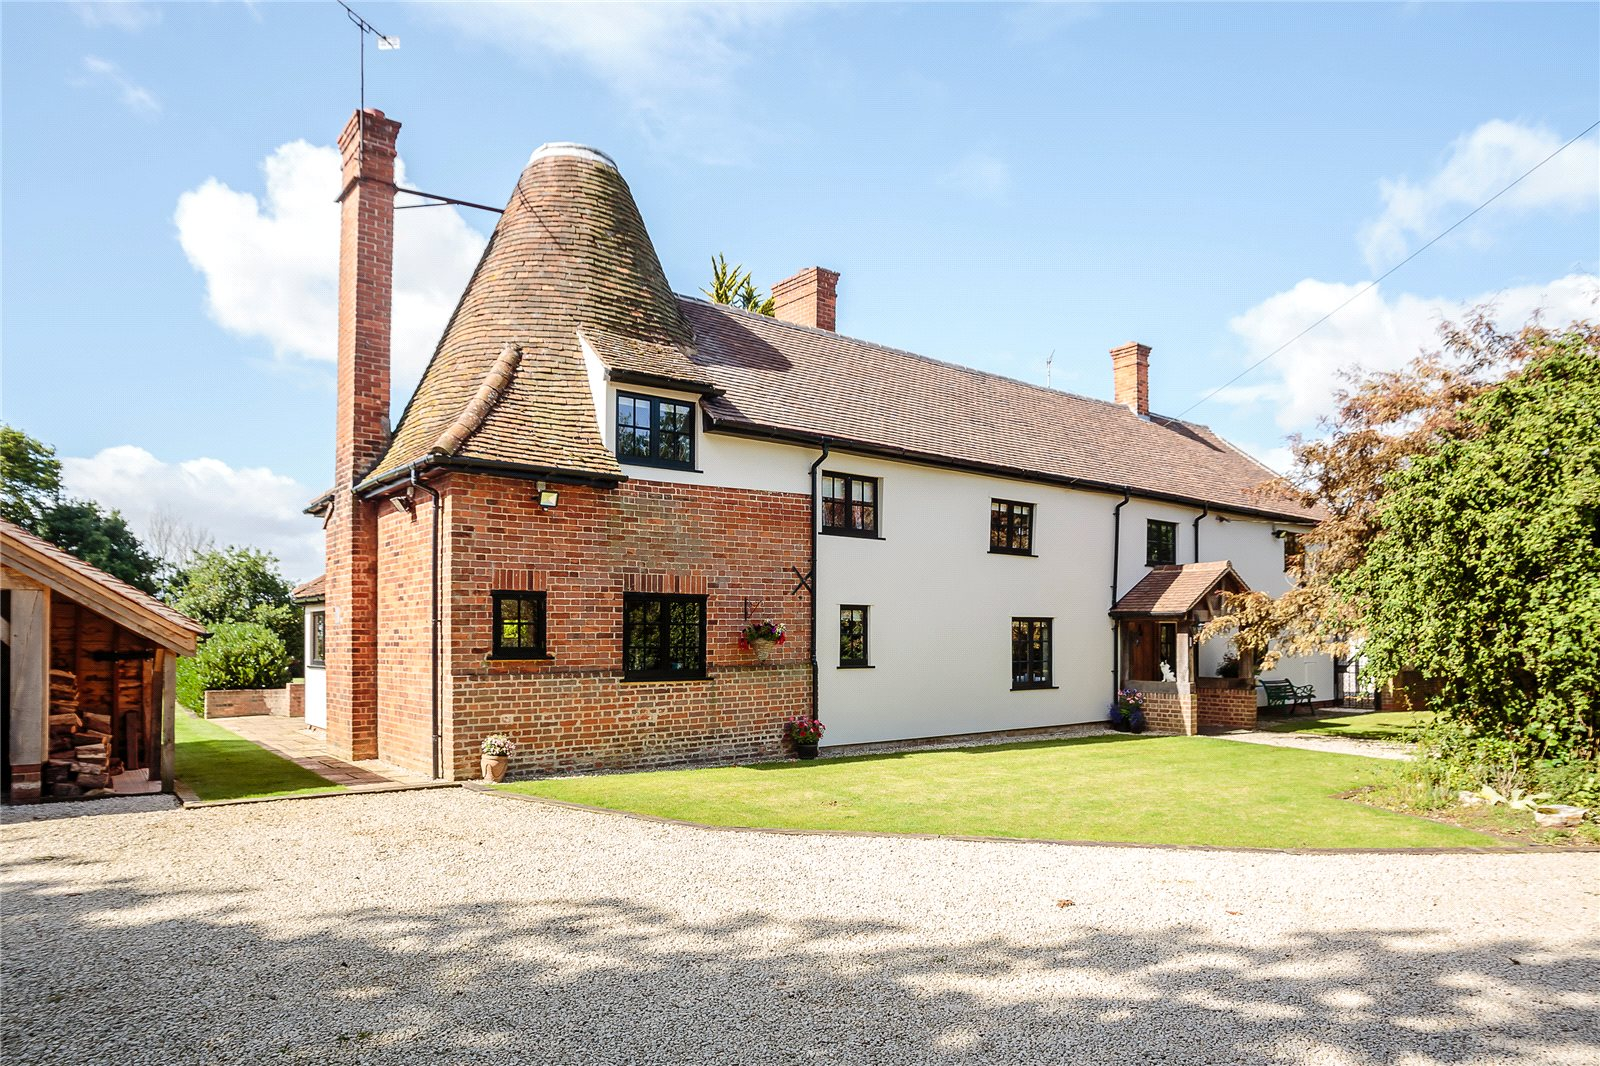 Additional photo for property listing at Mumfords Hill, Blackmore End, Braintree, Essex, CM7 Braintree, イギリス